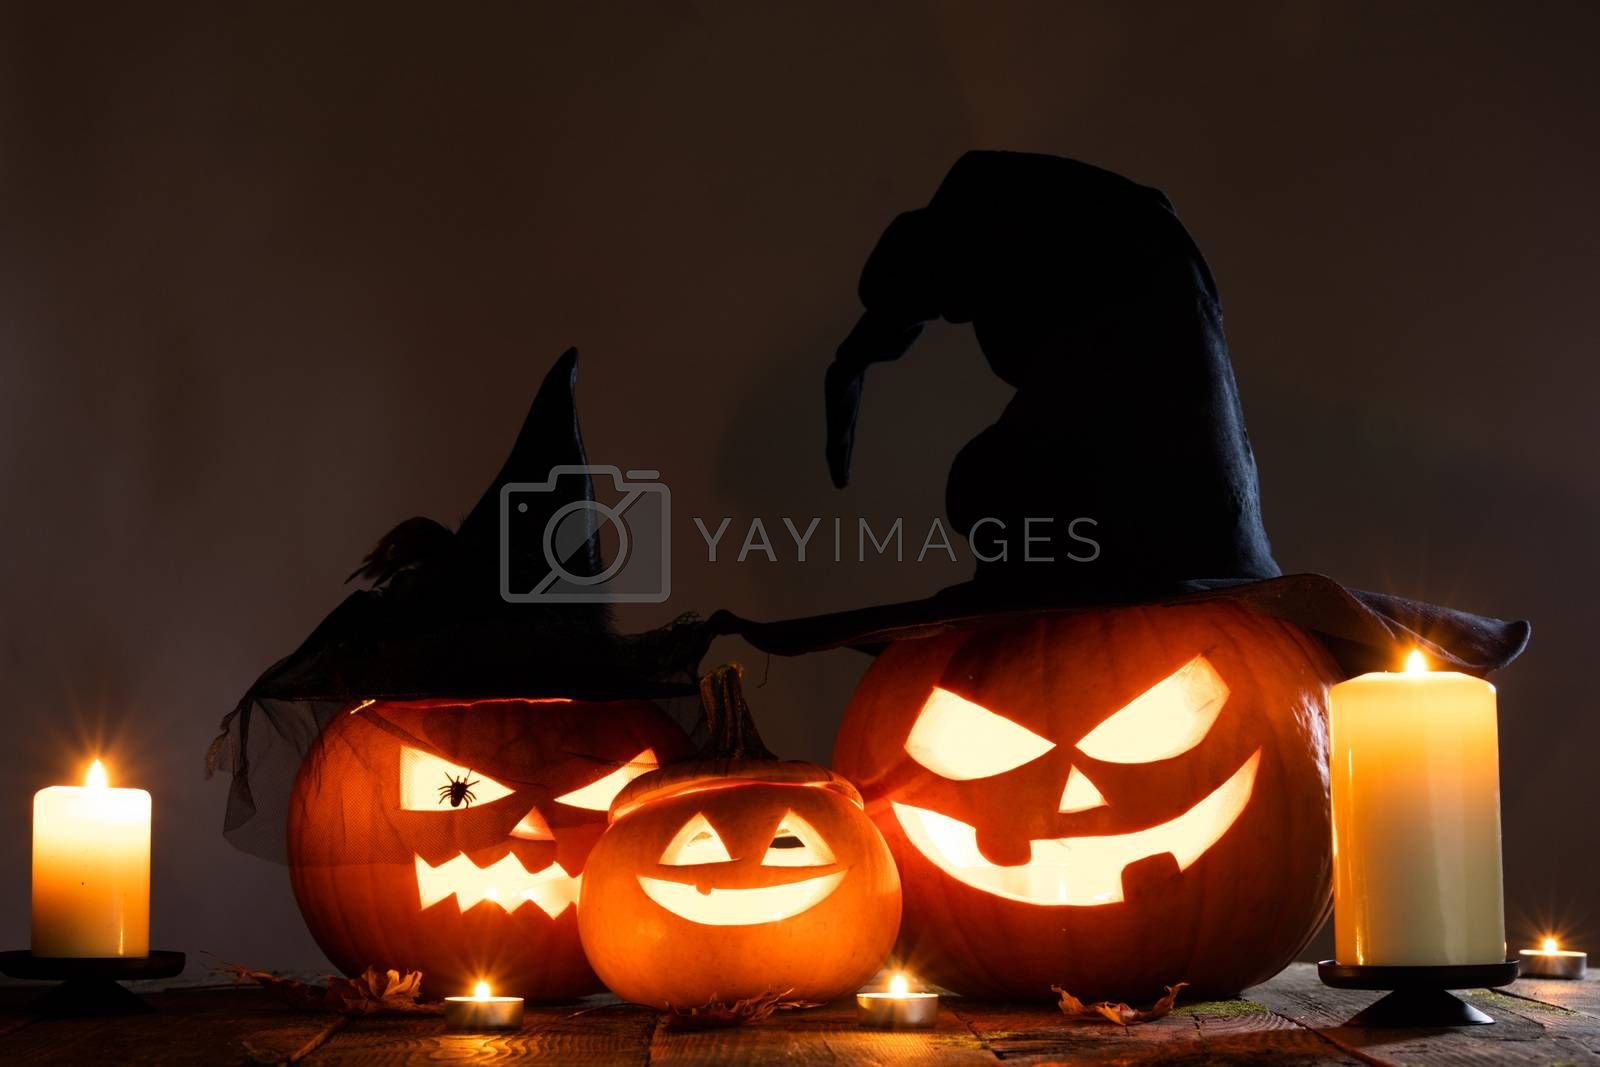 Jack O Lantern Halloween pumpkins by Yellowj